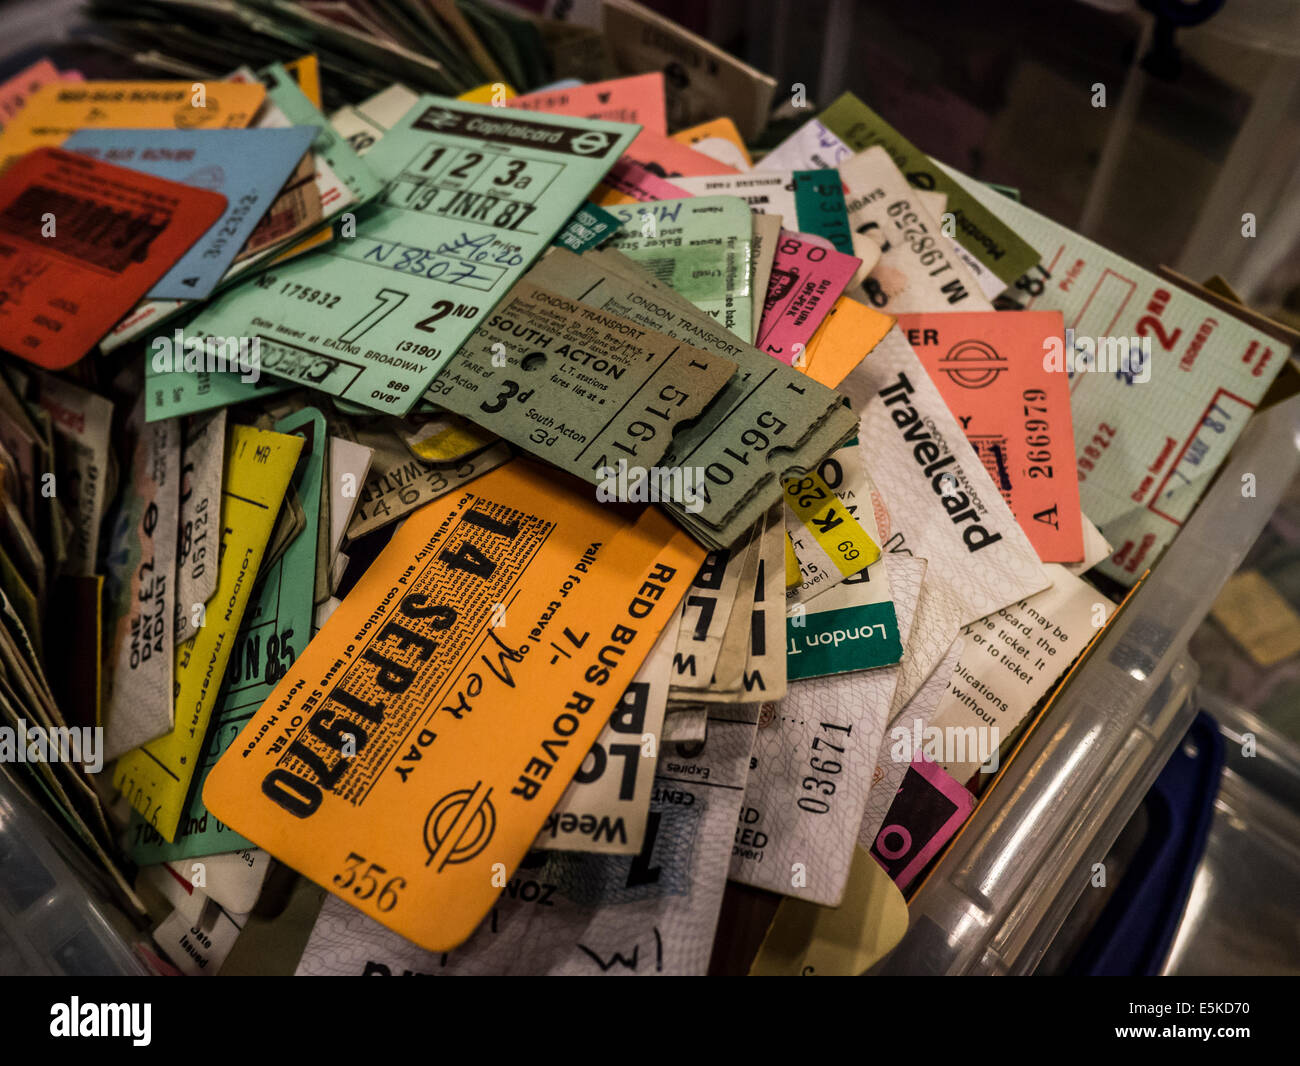 Used  Bus and Train tickets, taken at London Transport Museum Depot - Stock Image